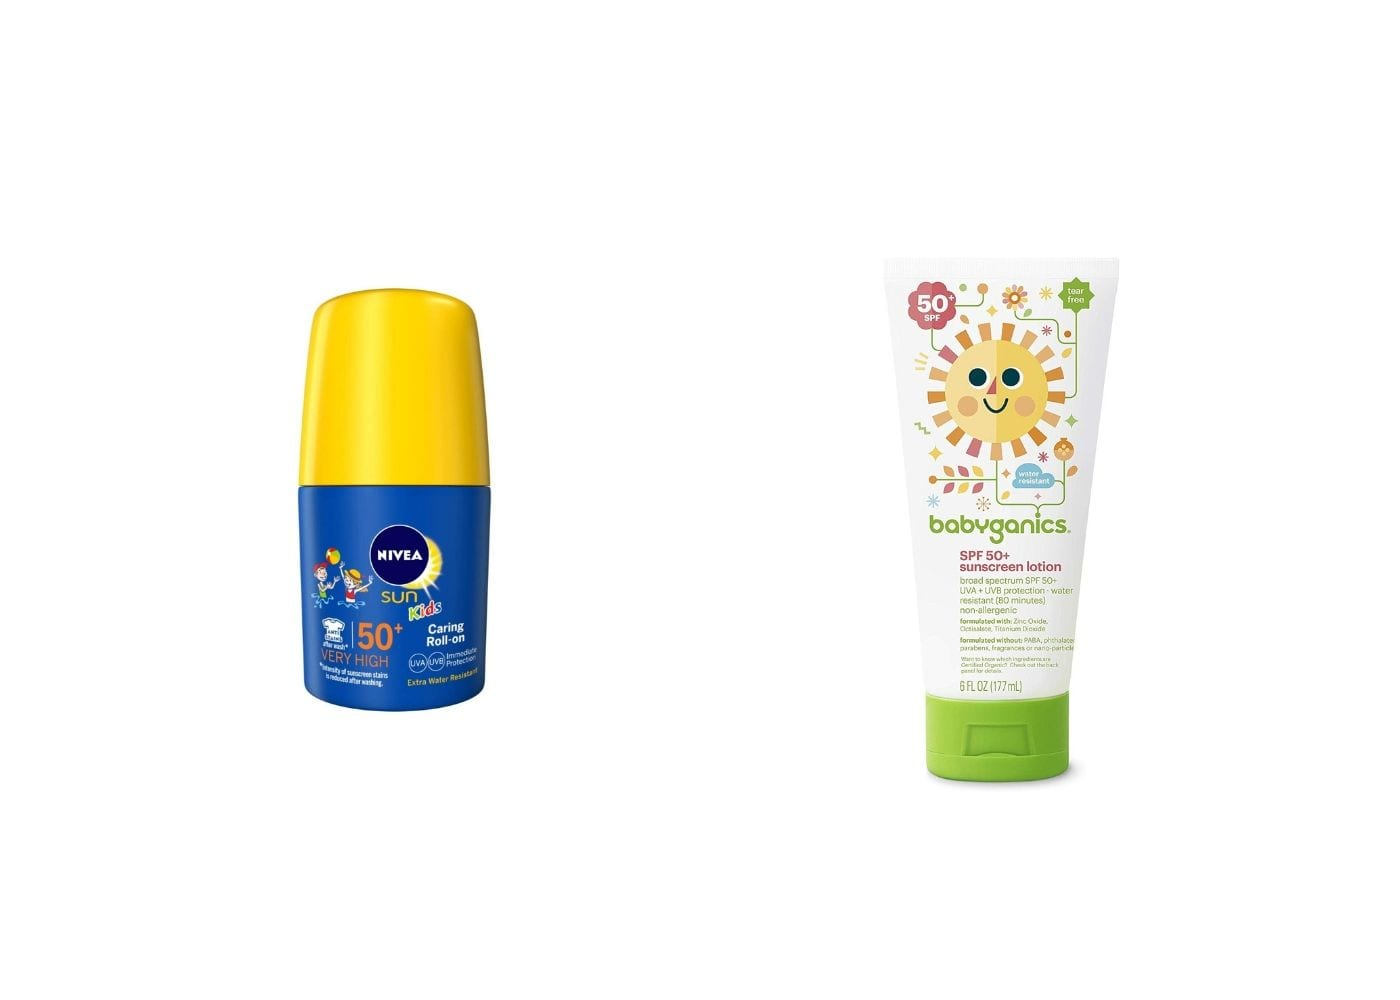 Beauty Products I Can Borrow From My Baby: Sunscreen from Nivea and Babyganics